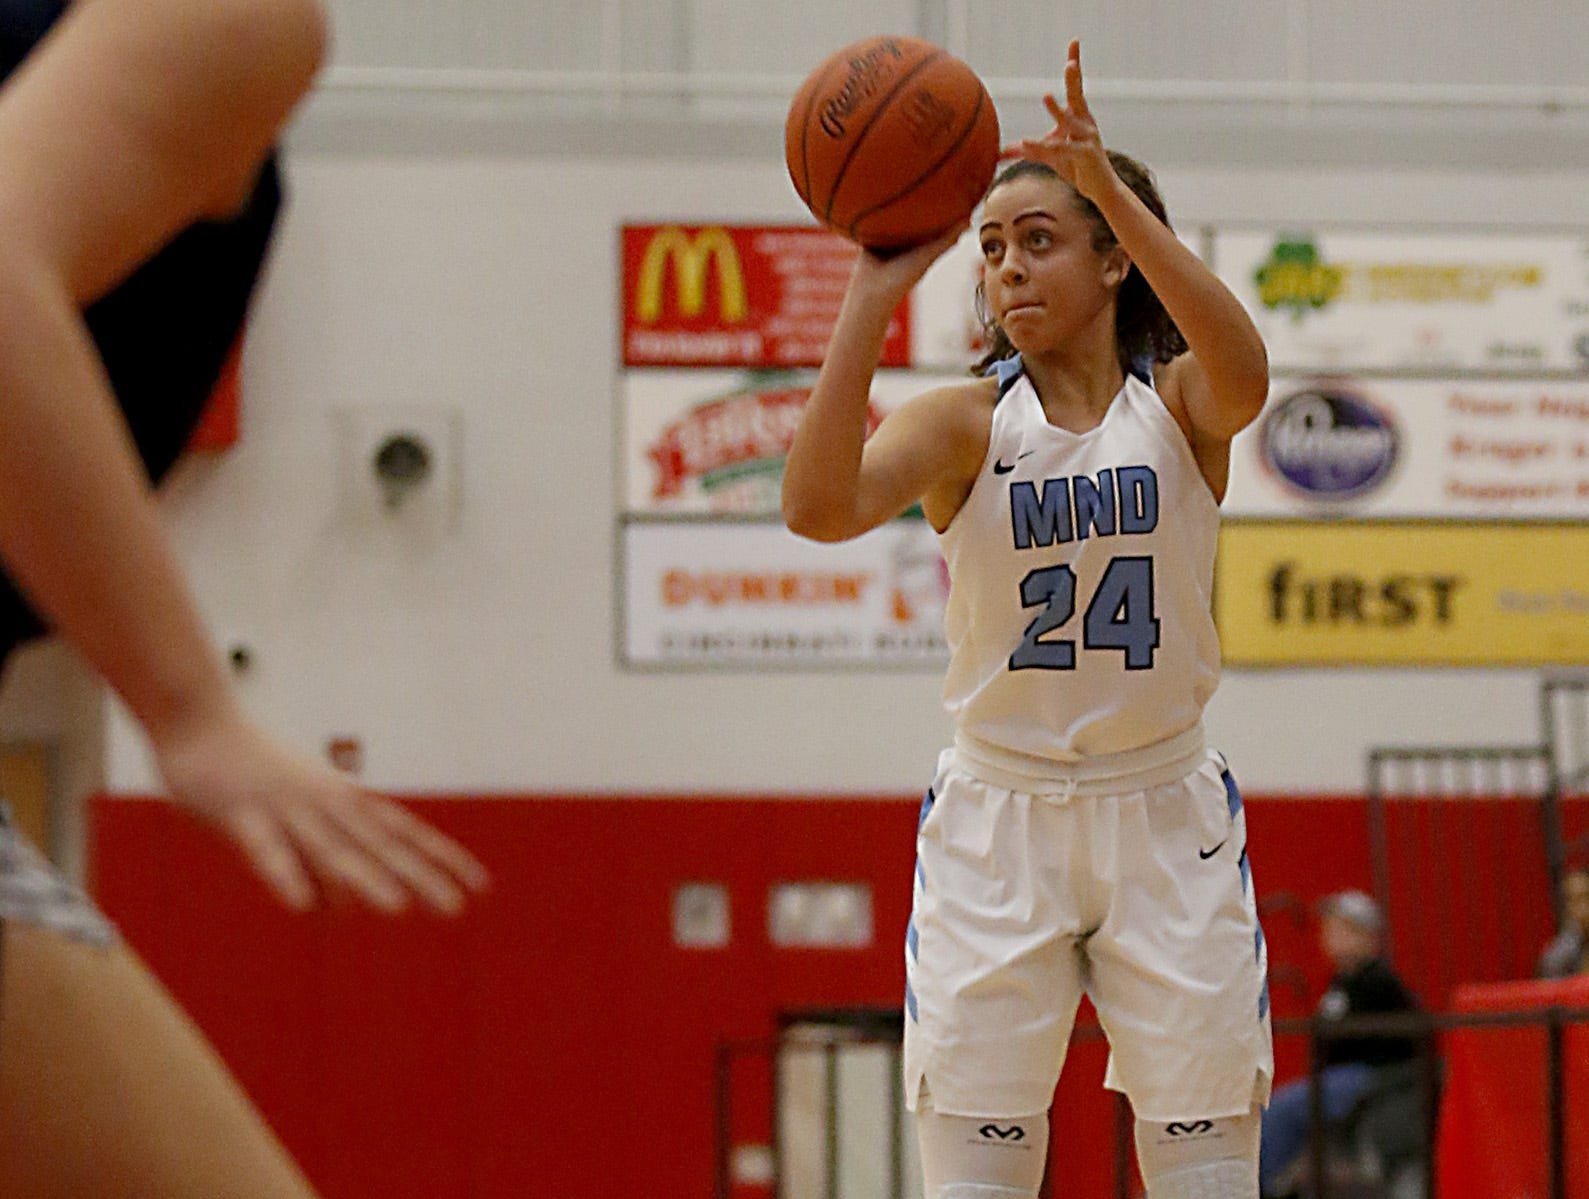 Mt. Notre Dame's Gabbie Marshall hits a three well behind the arc against Kettering Fairmont during the Southwest District Girls Division I finals at Princeton High School in Cincinnati Saturday, March 2, 2019.